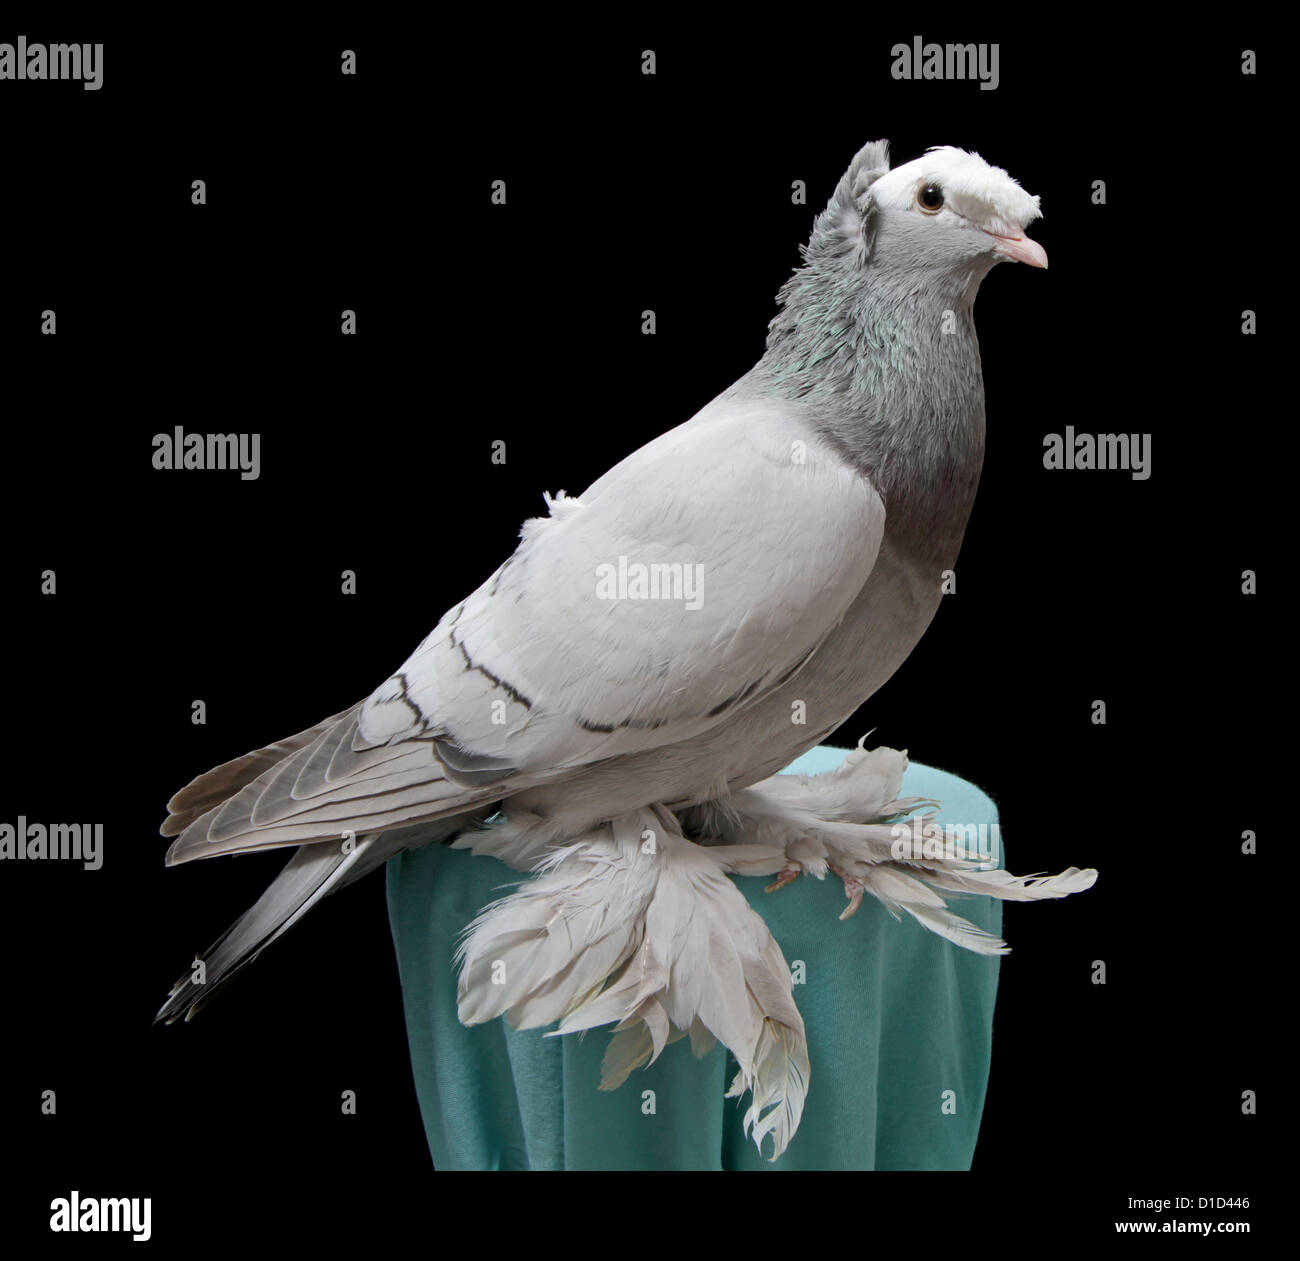 Silver double-crested priest fancy pigeon on a plain black background. - Stock Image